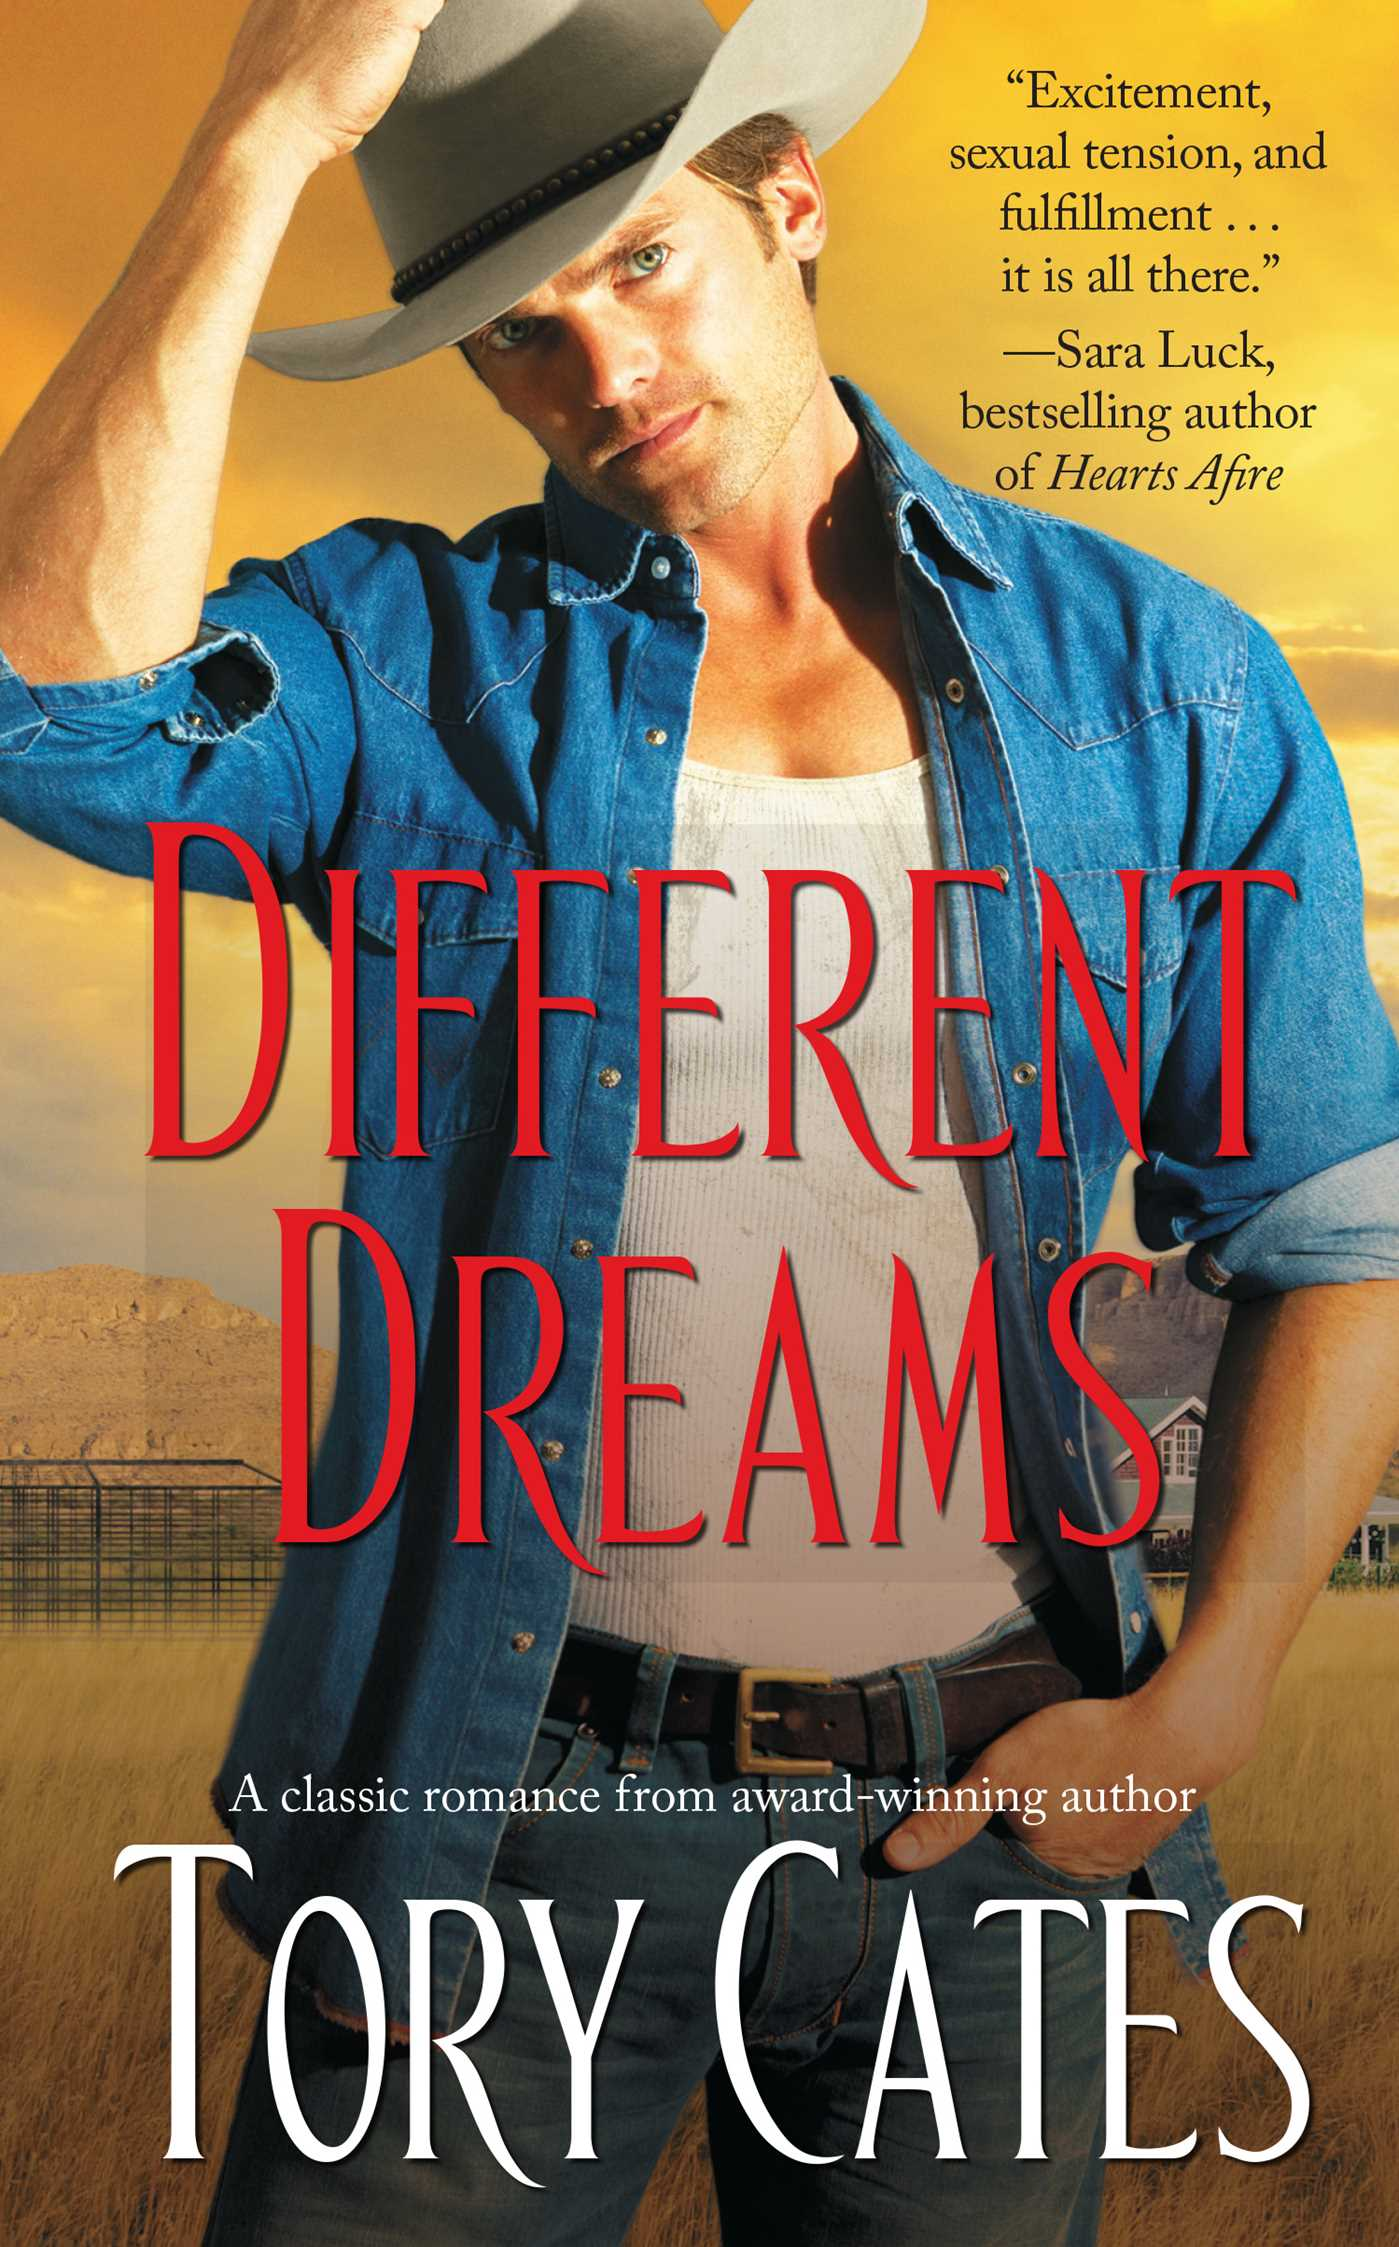 Different-dreams-9781476732640_hr